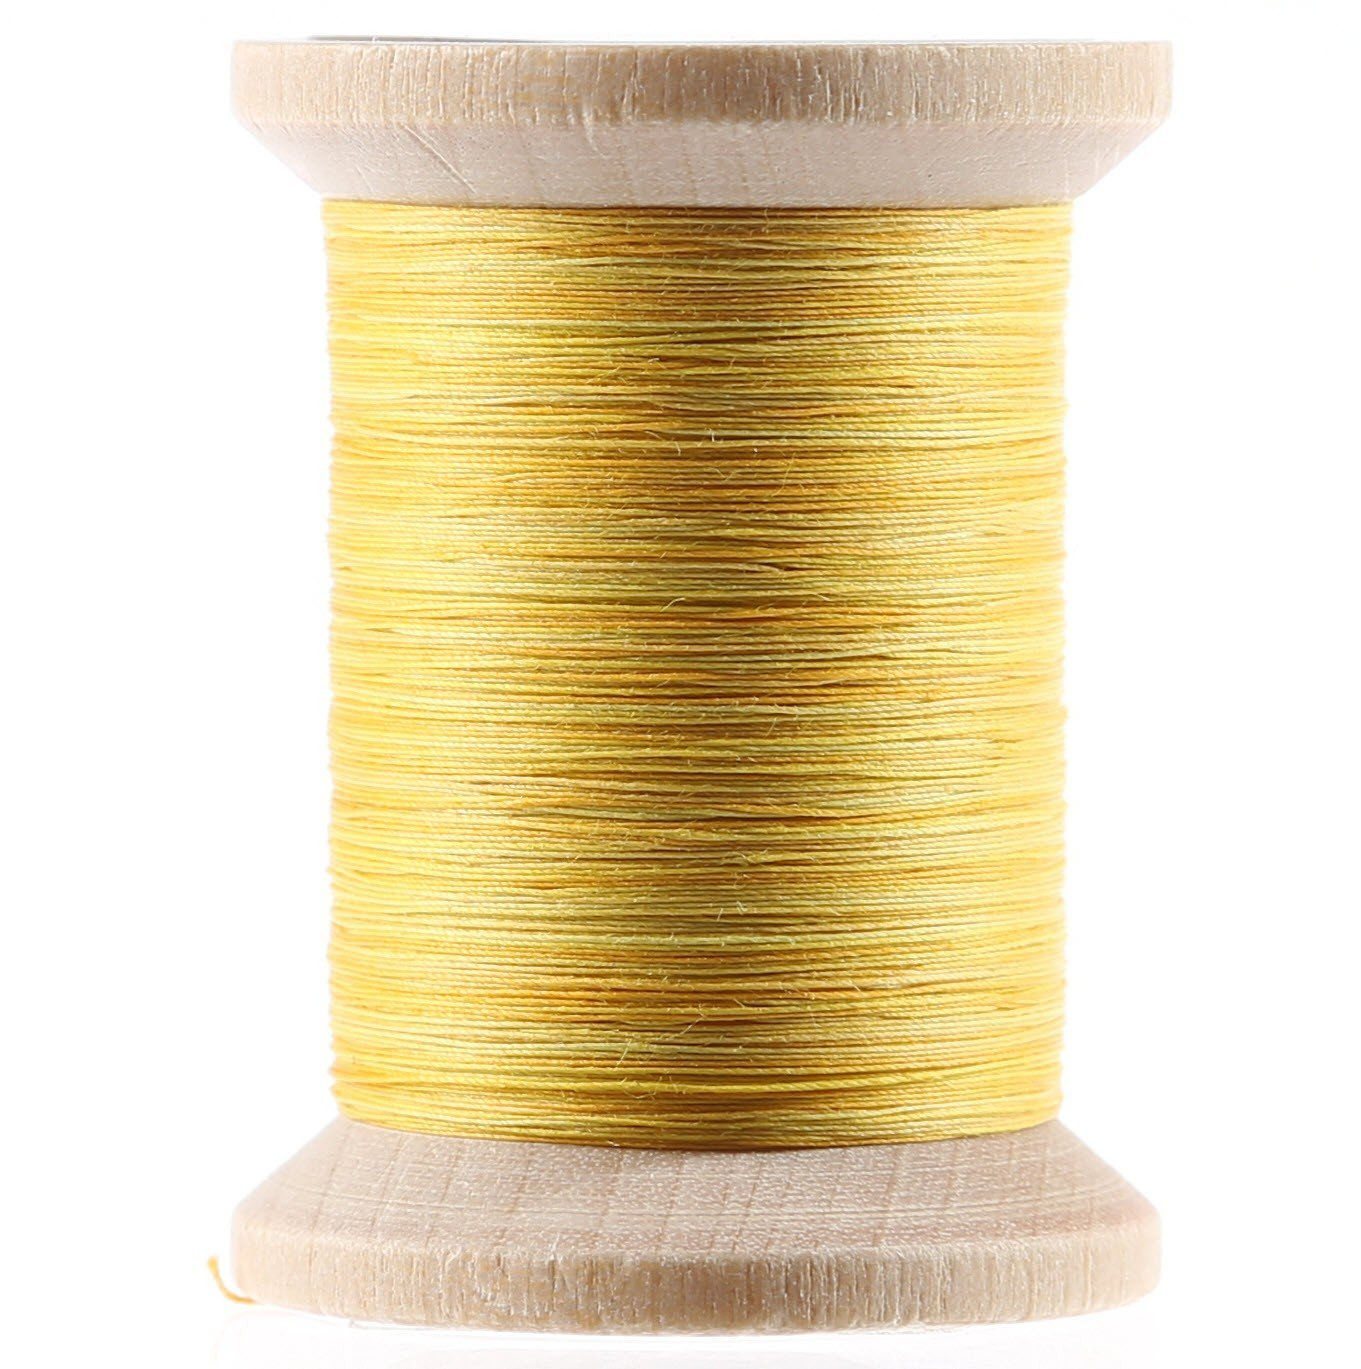 Variegated Cotton Hand Quilting Thread 400yds Yellows